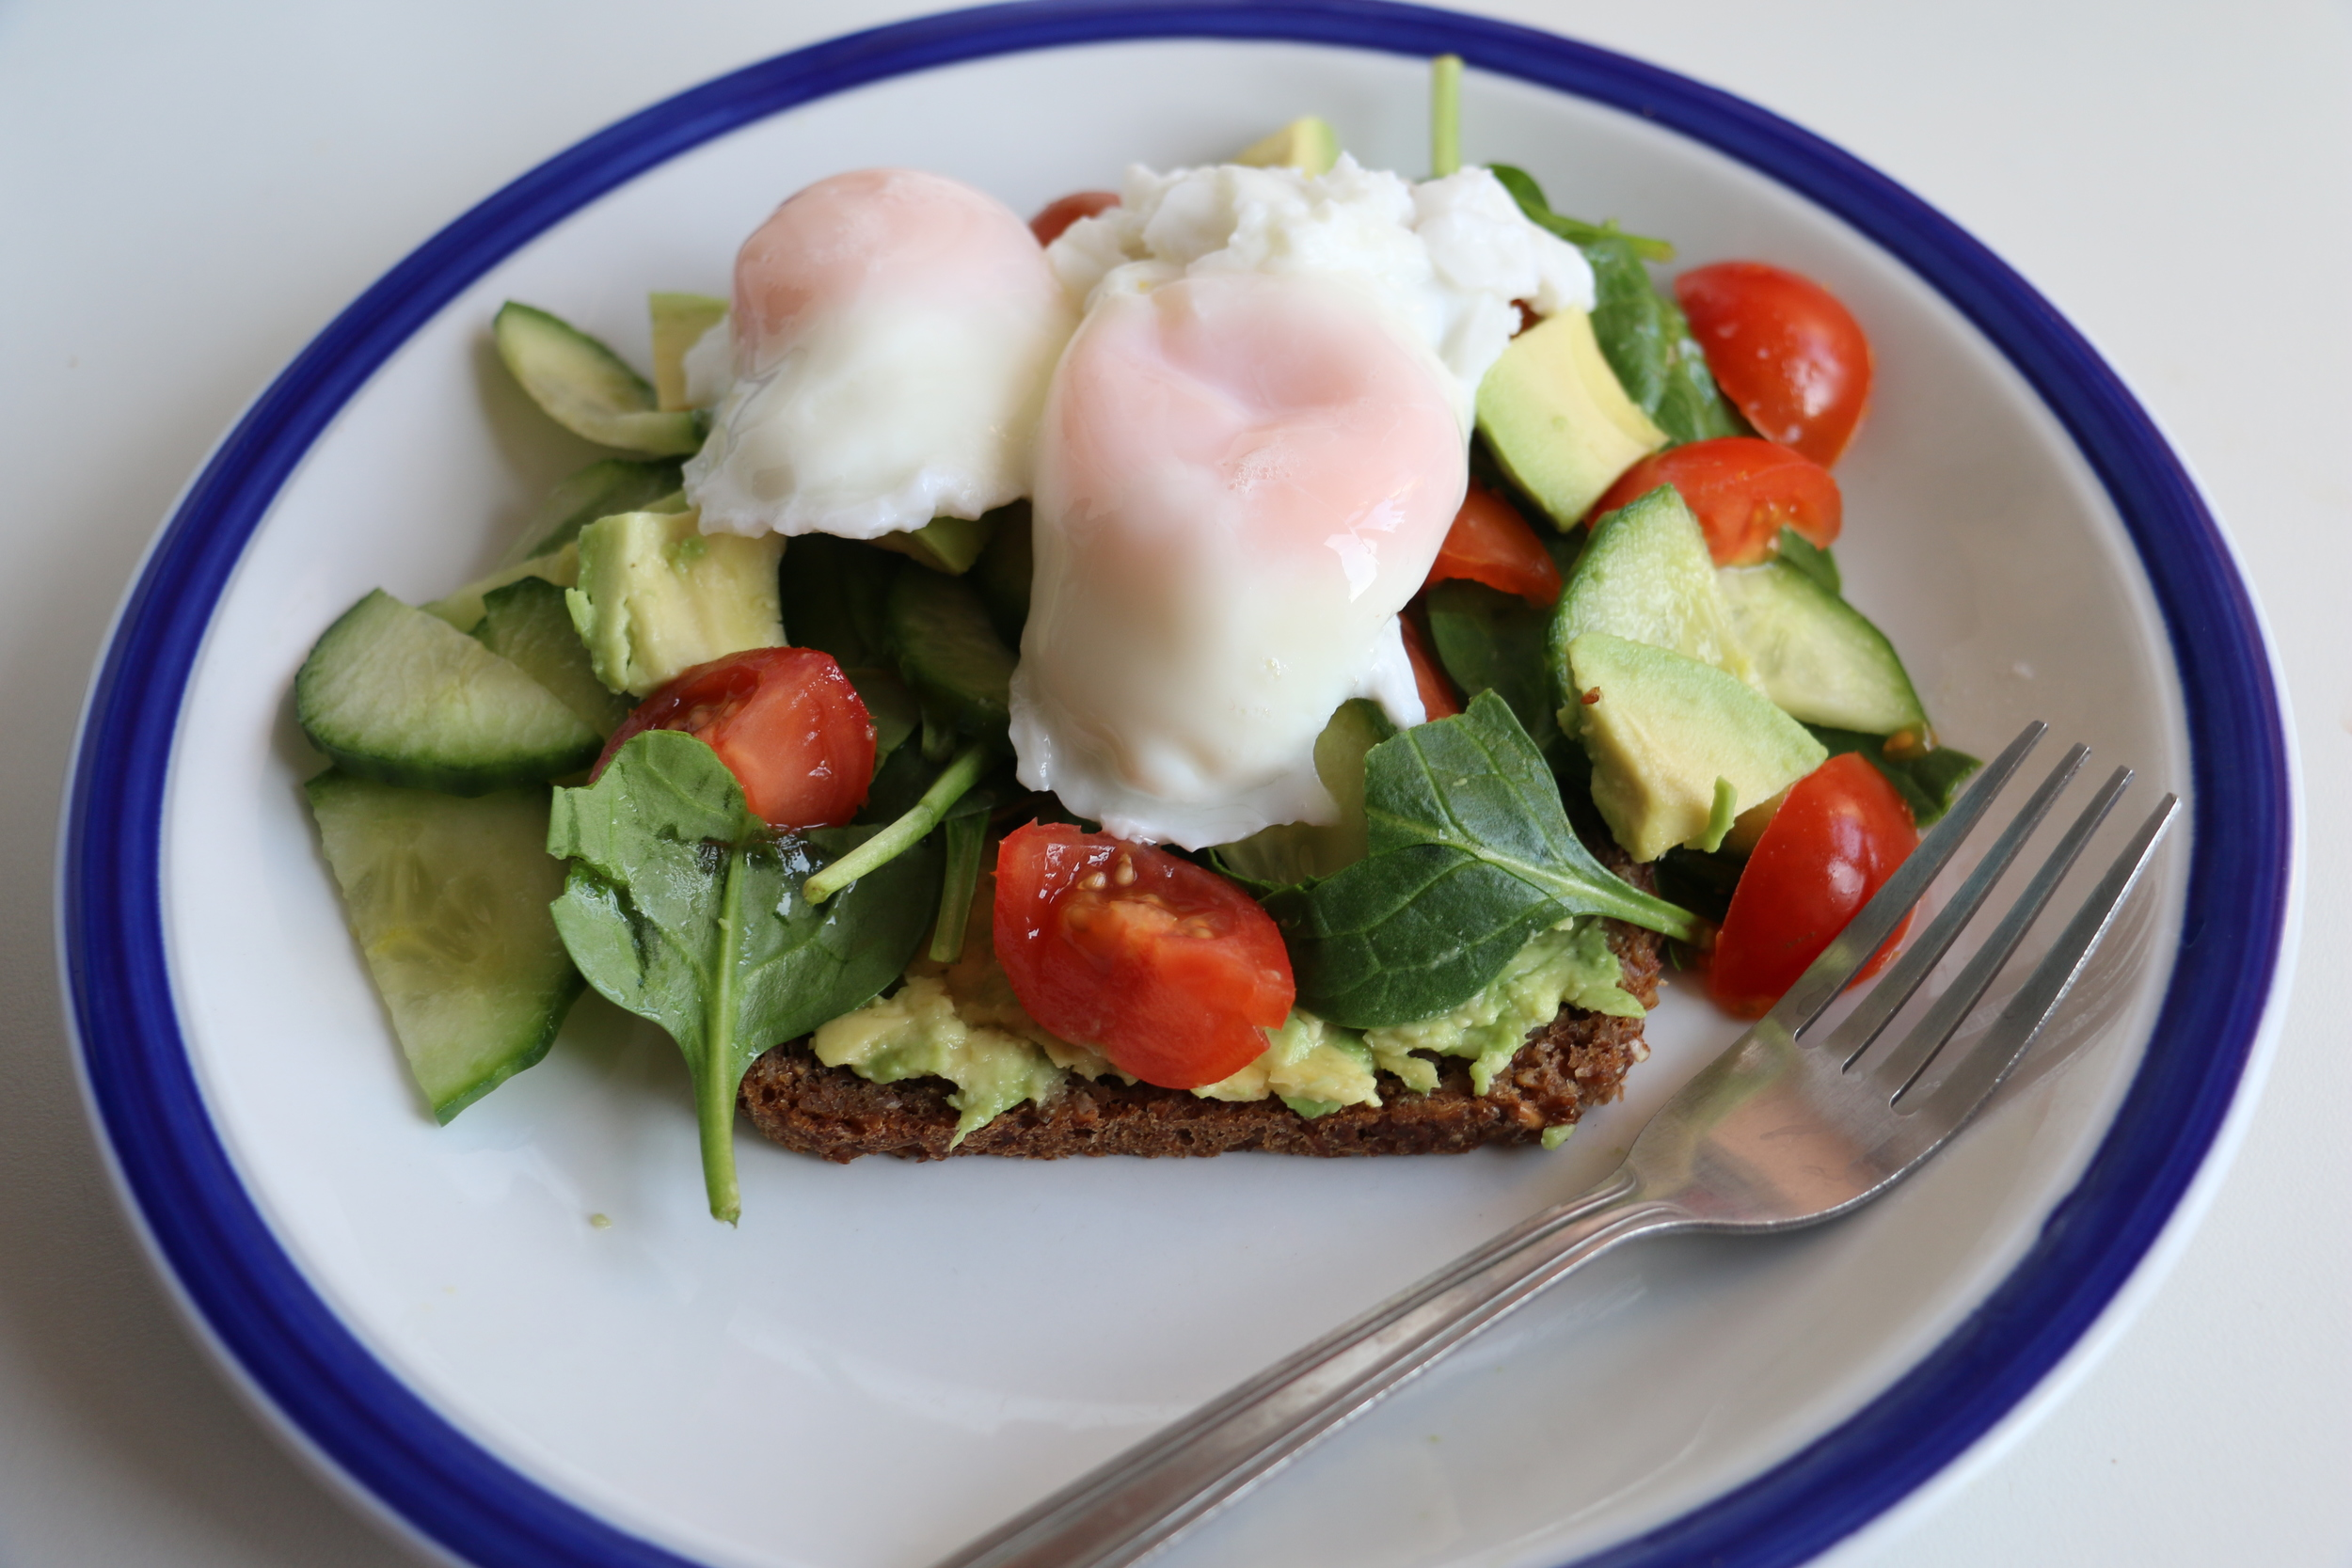 Two poached eggs, one slice of rye bread with half an avocado crushed onto it. Cherry tomato, cucumber and spinach too.